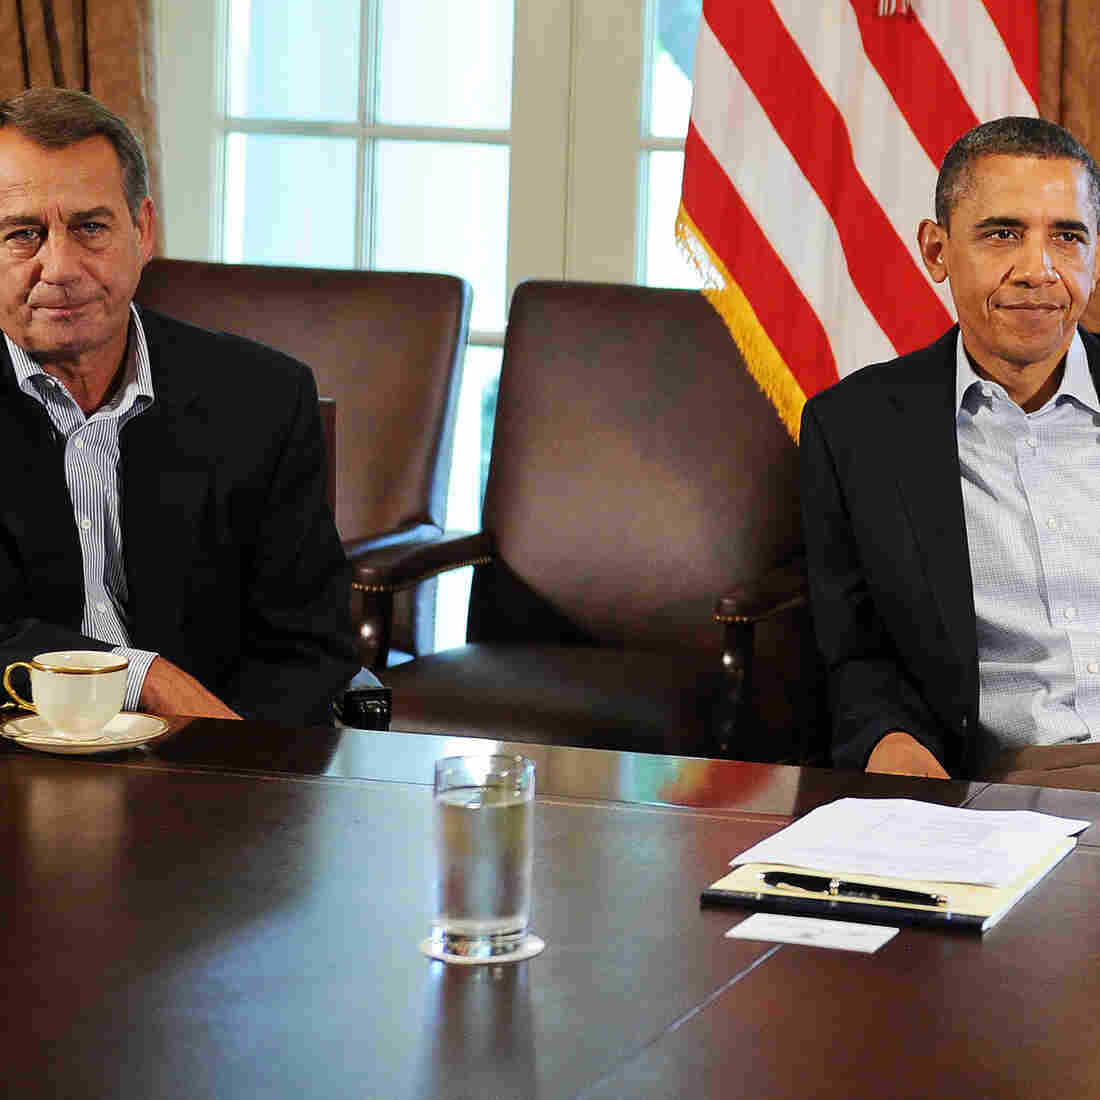 Obama And Boehner Call It Negotiation; The Rest Of Us Are Permitted To Laugh